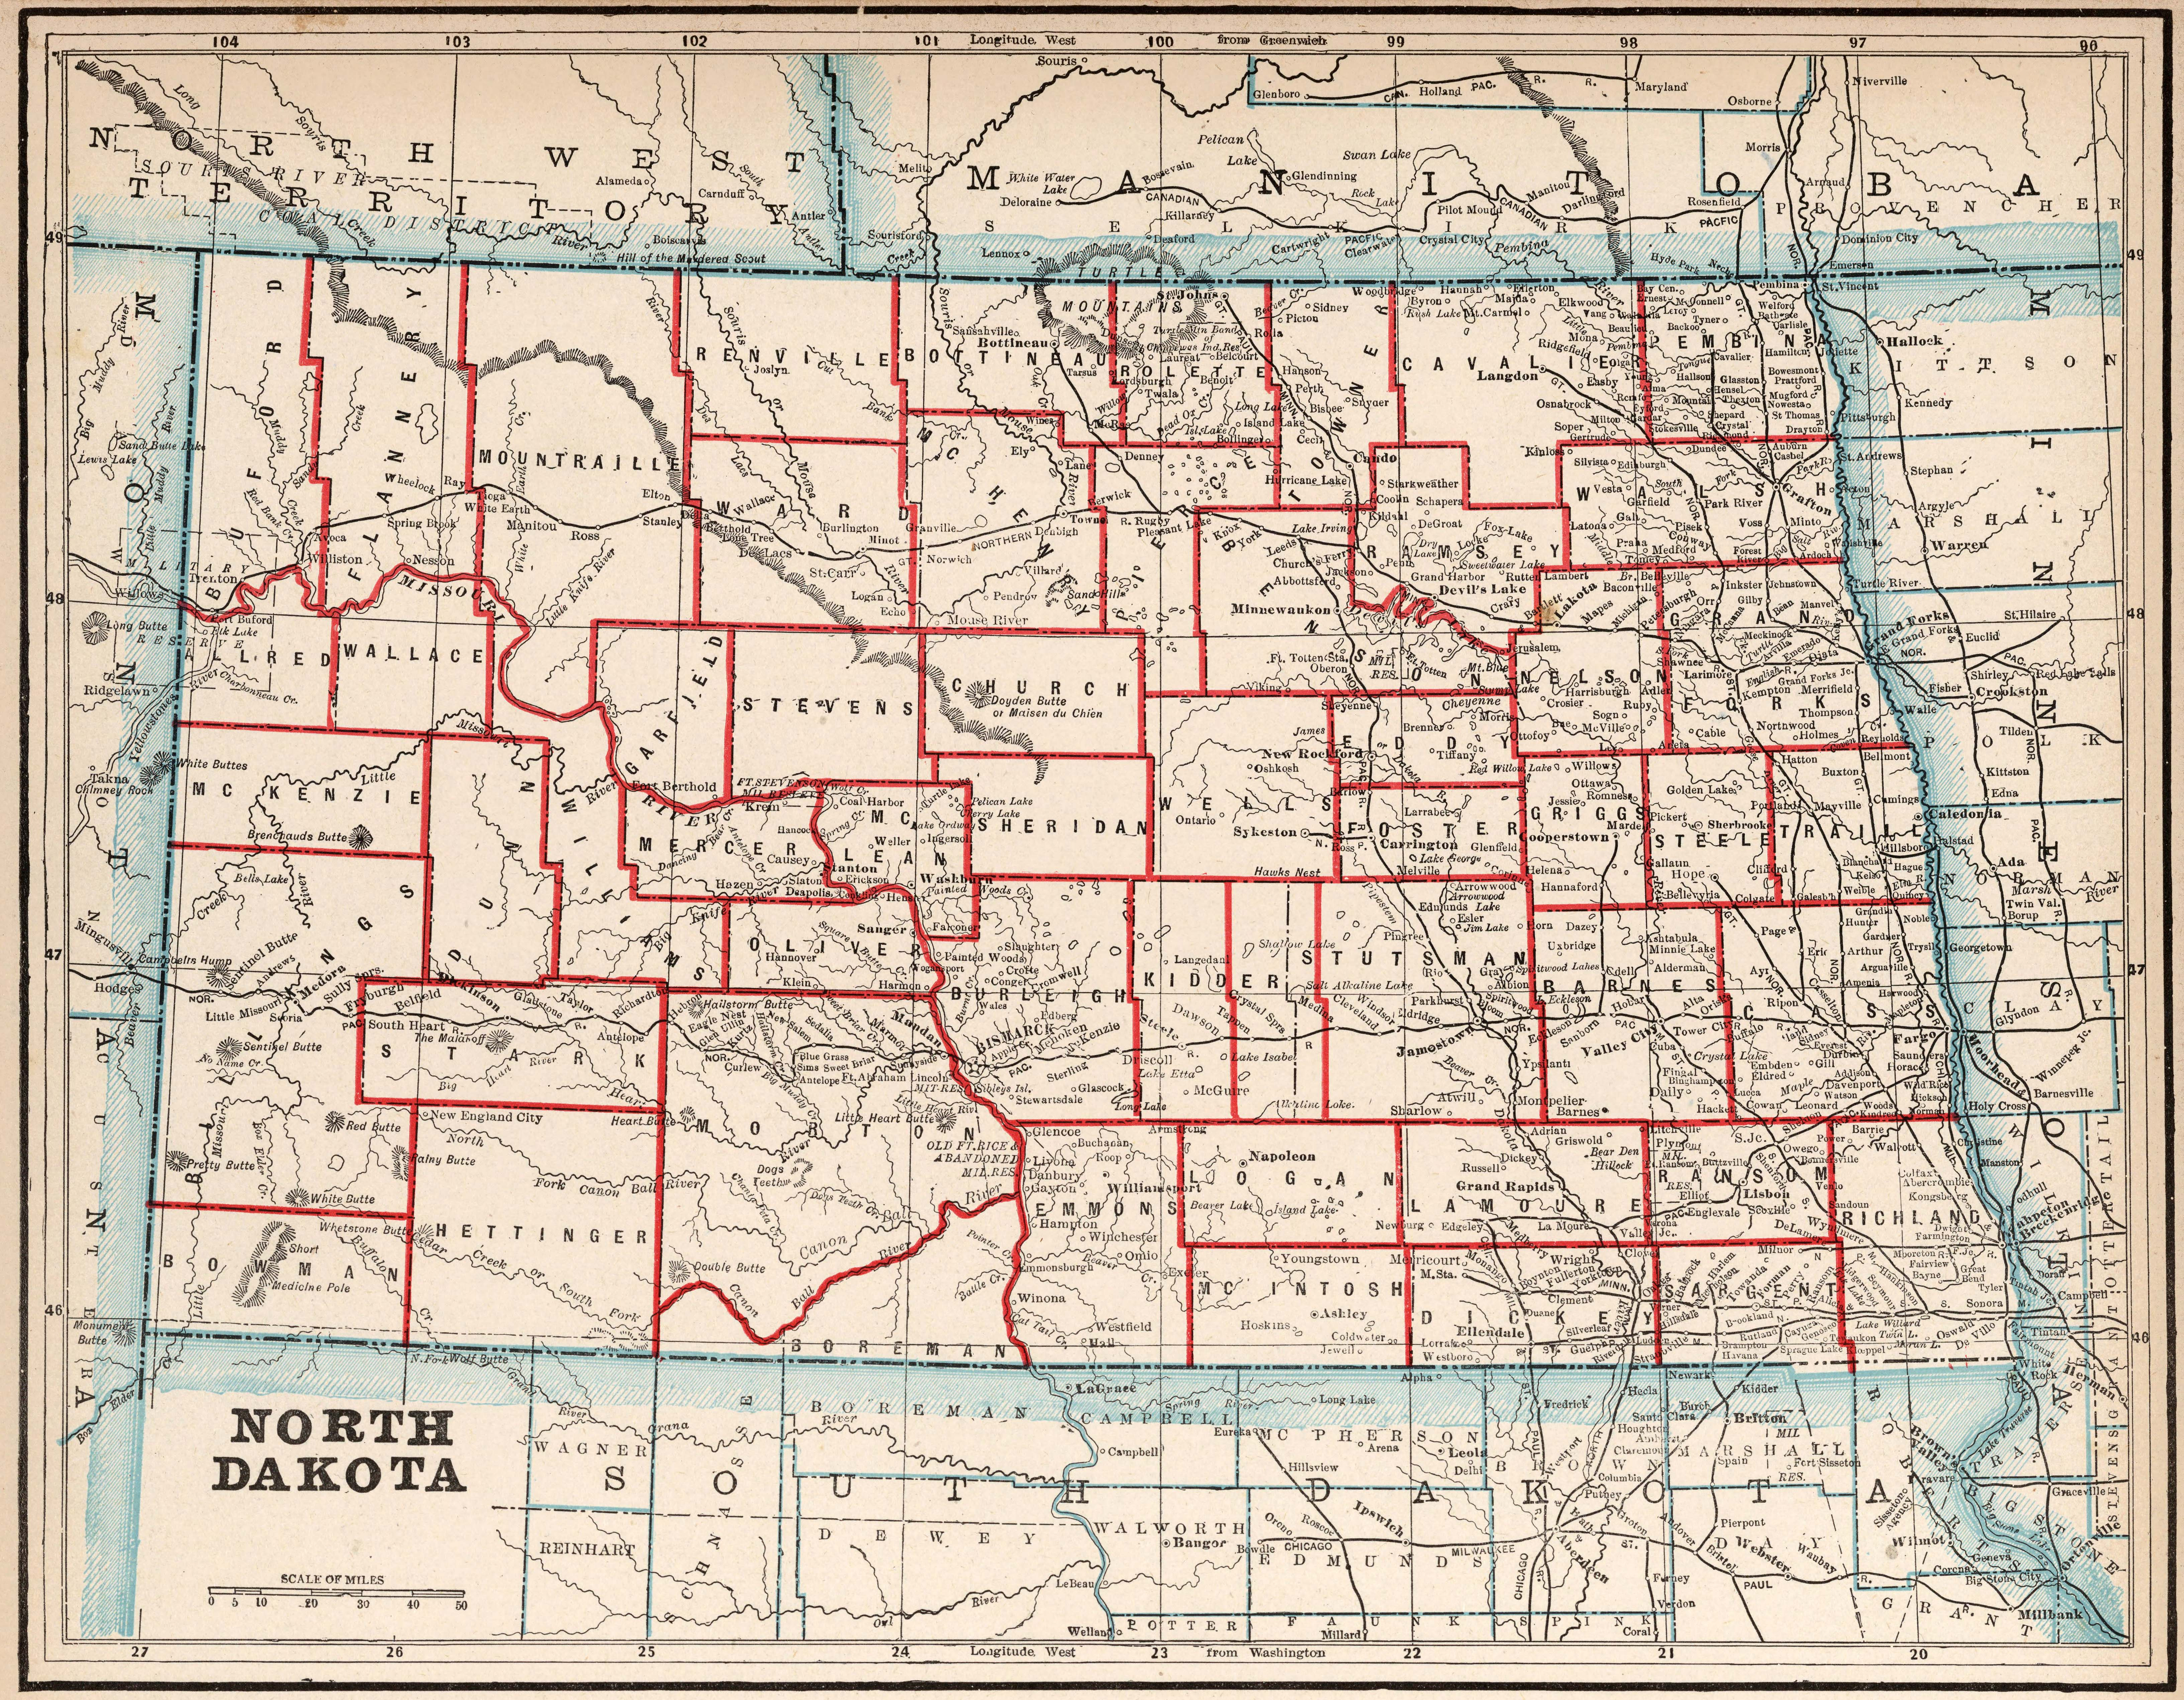 Old Historical City, County and State Maps of North Dakota